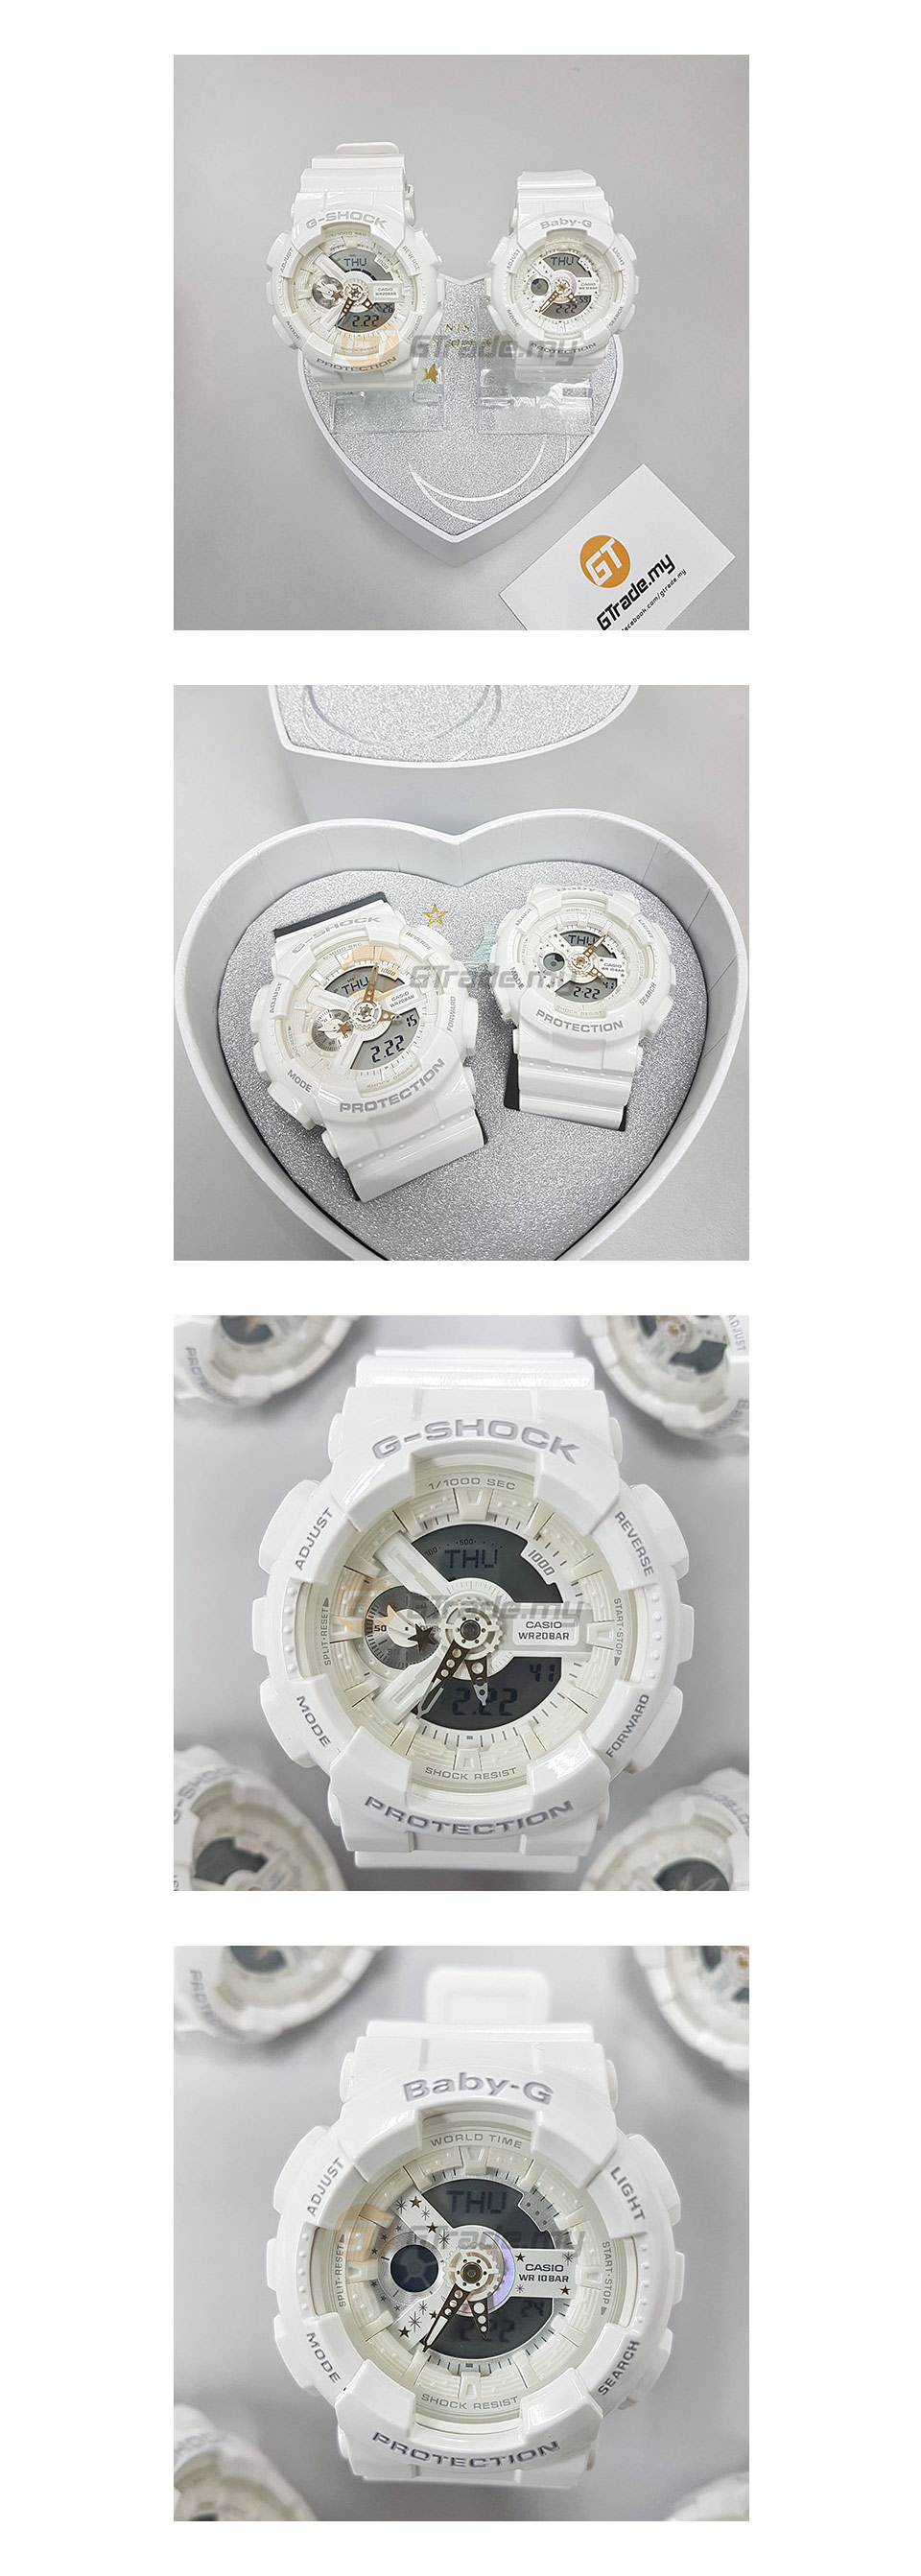 casio-g-shock-baby-g-couple-watch-lover-collection-lov-17a-7a-r